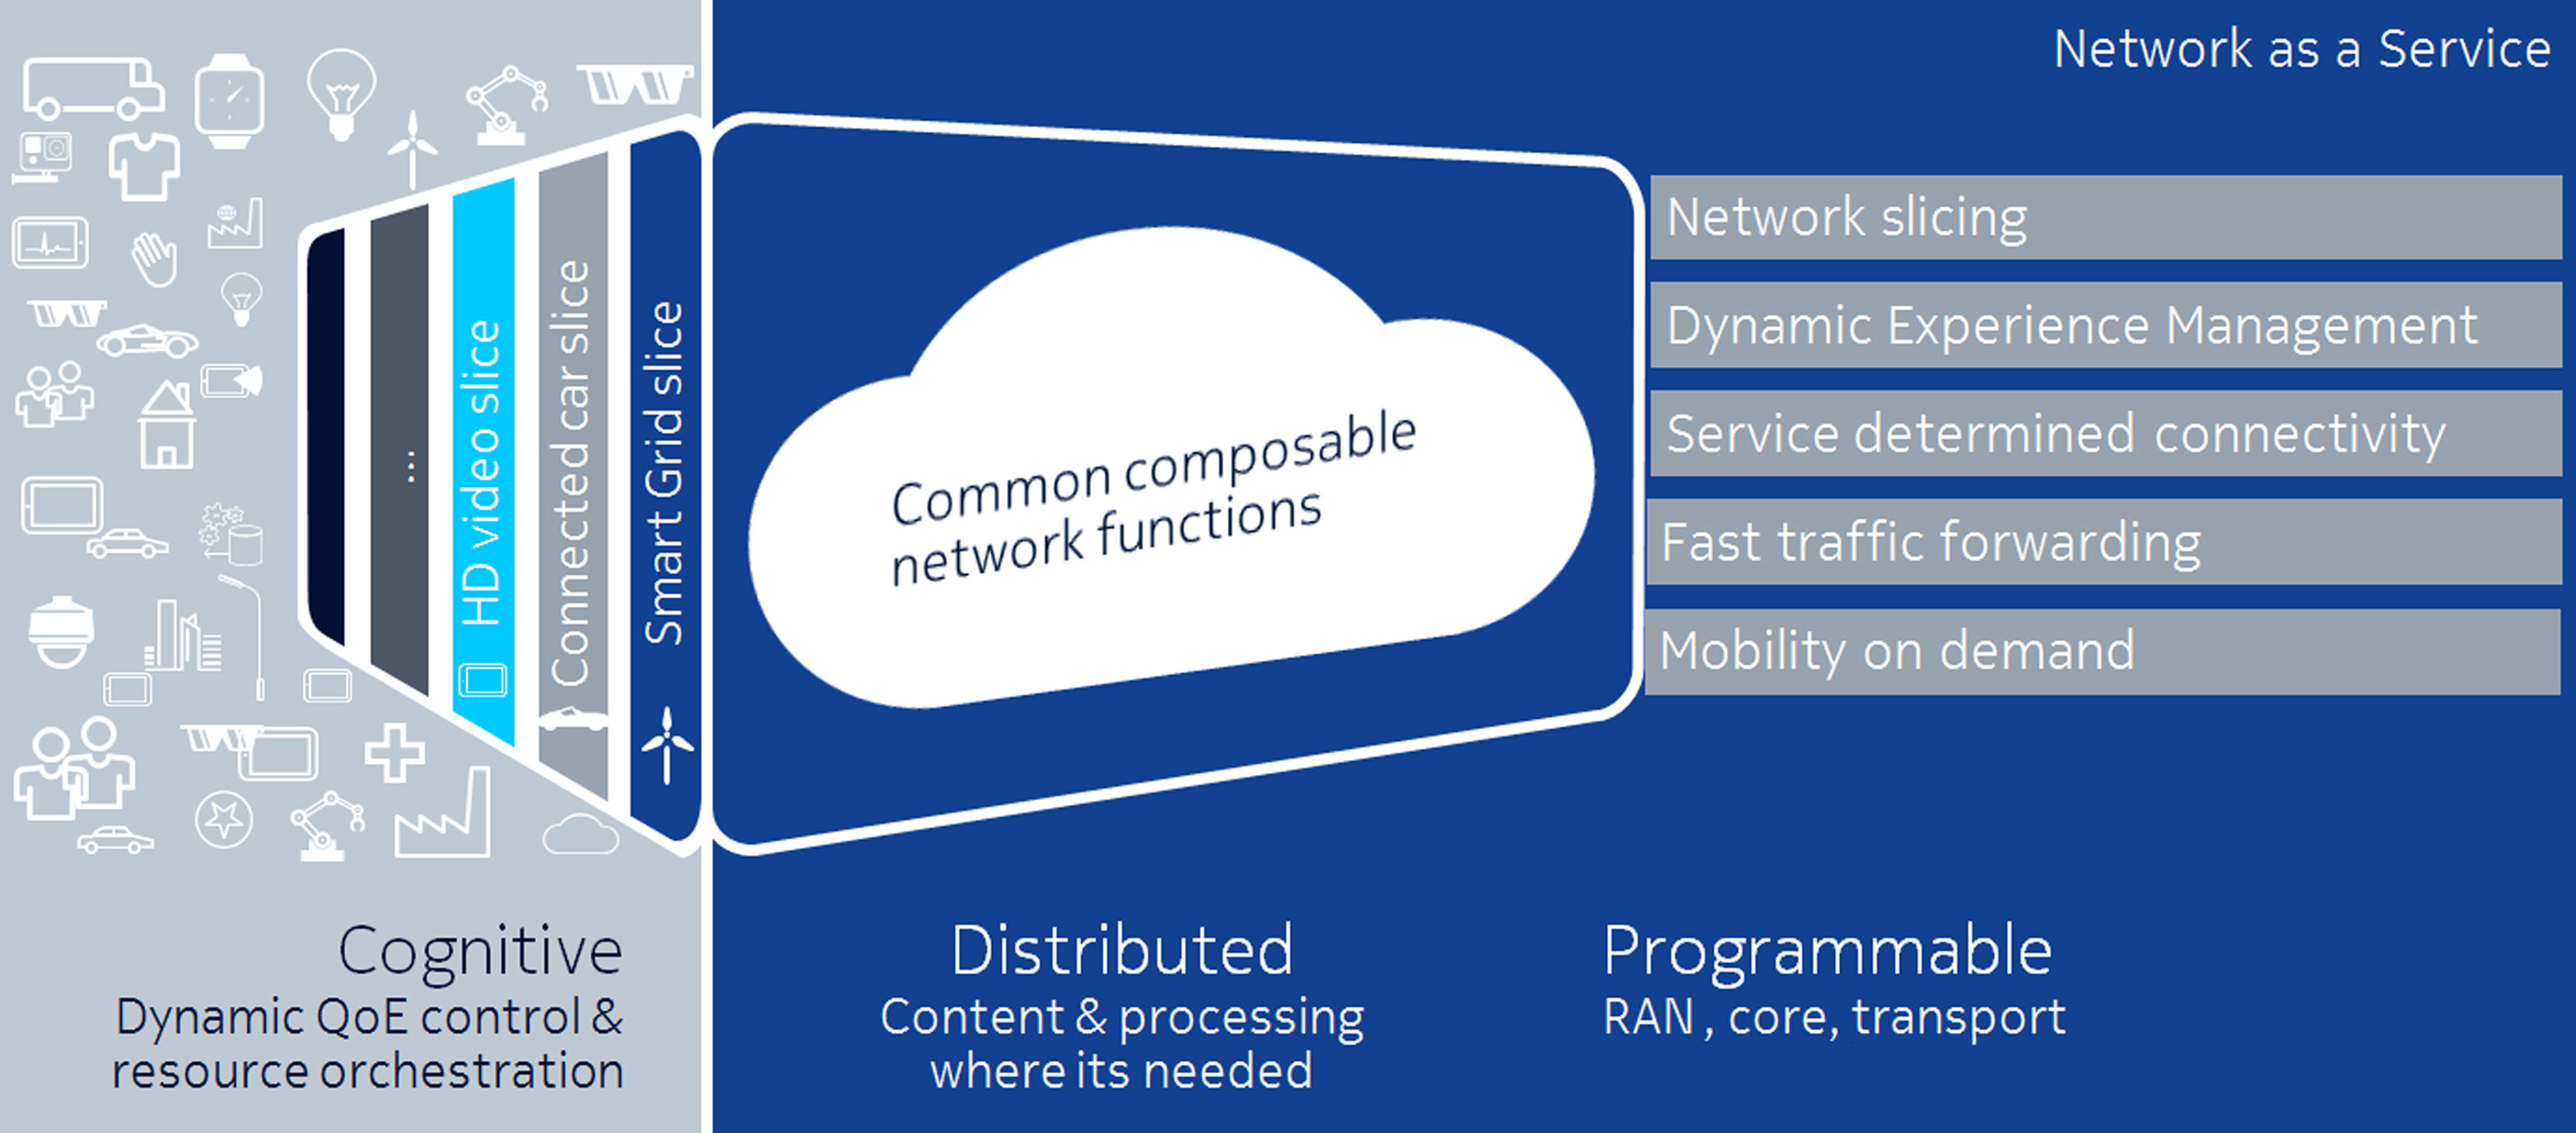 Nokia reveals new network as a service 5g architecture for Architecture 5g